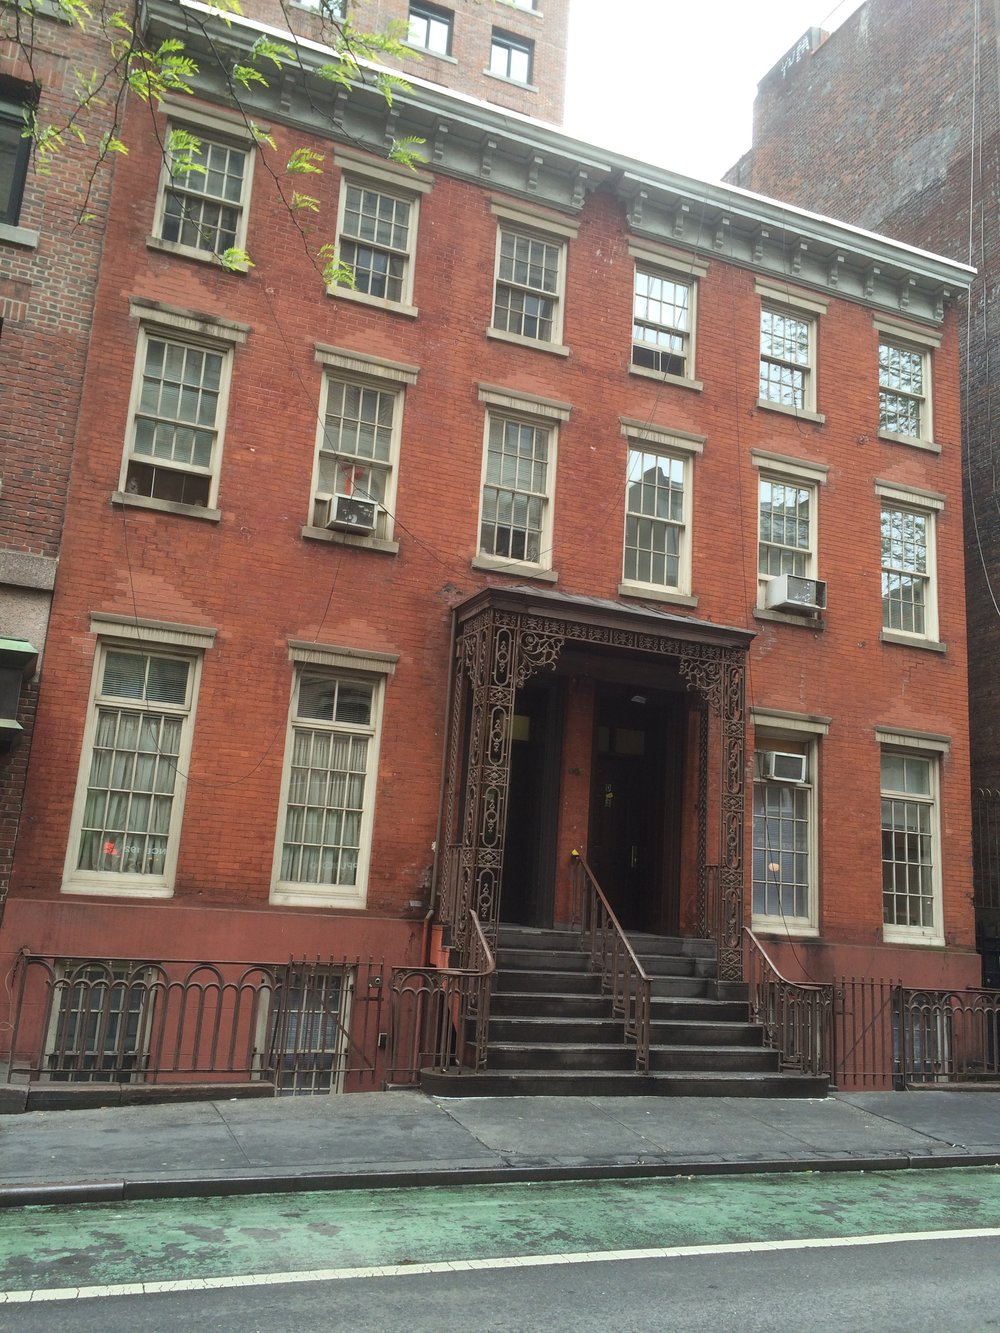 Louisa May Alcott's family home on MacDougal St.